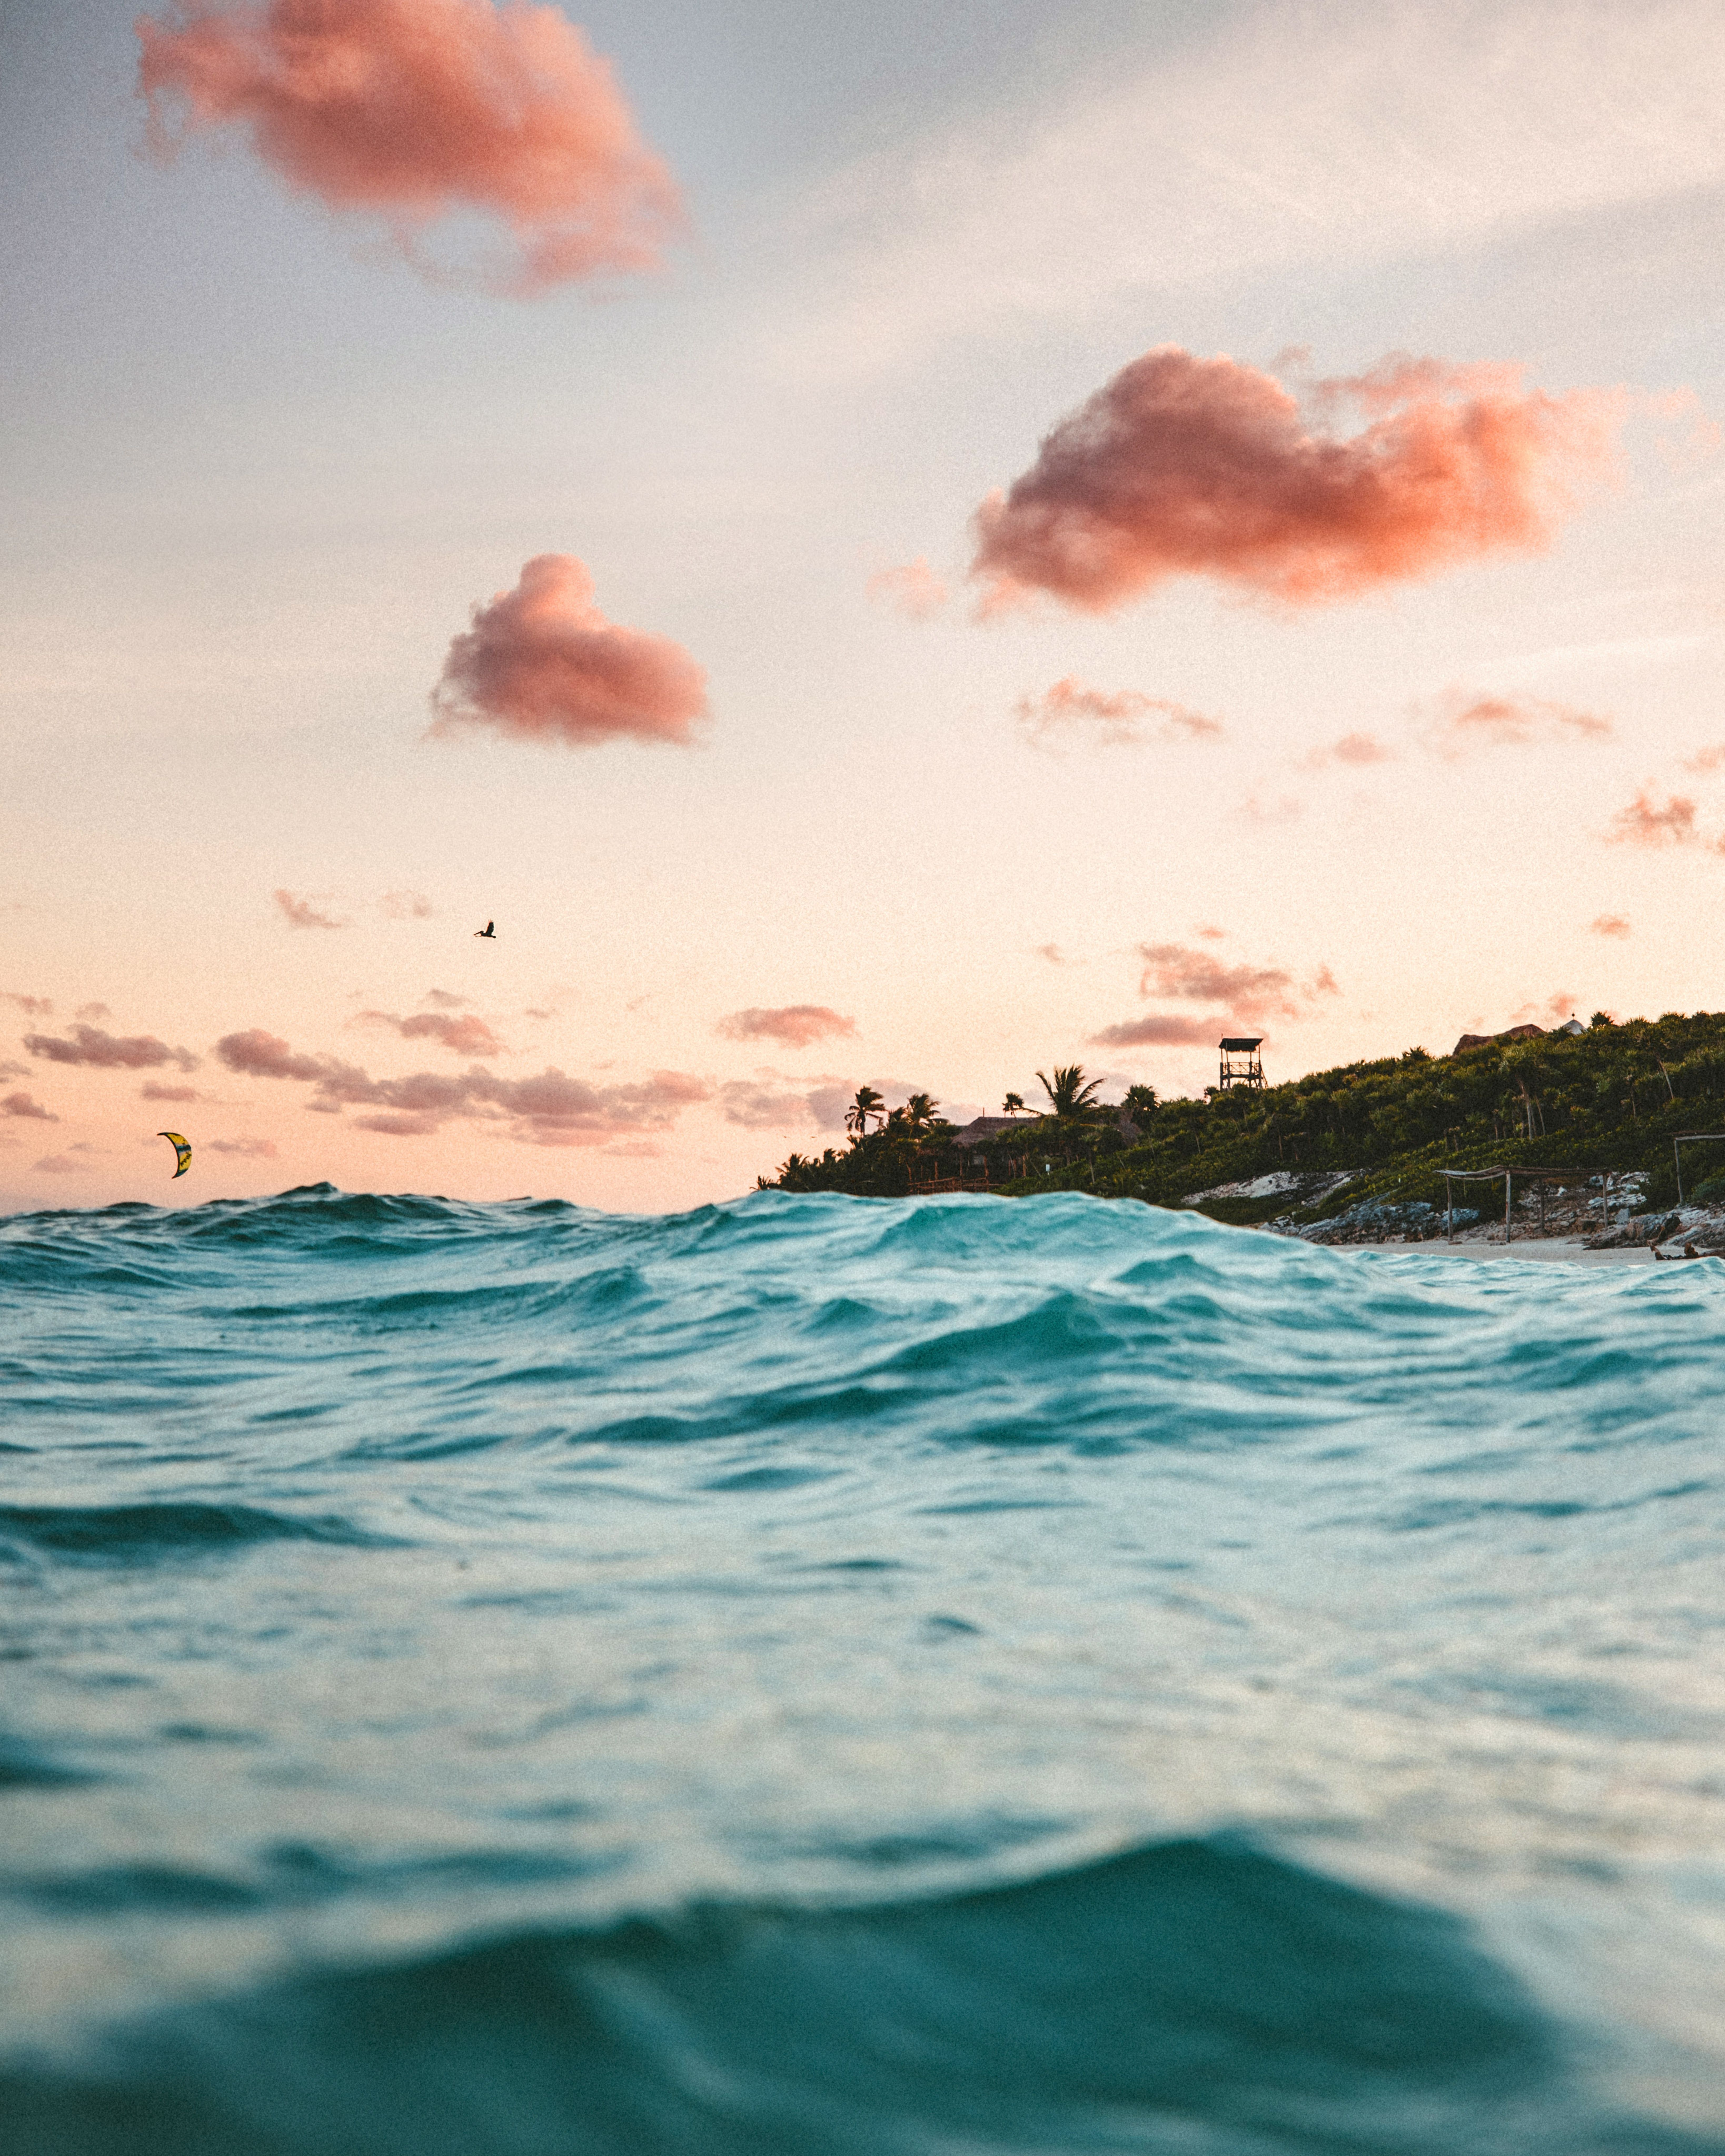 Tulum Mexico Photo By Earth Earth On Unsplash Waves Wallpaper Best Iphone Wallpapers Summer Waves